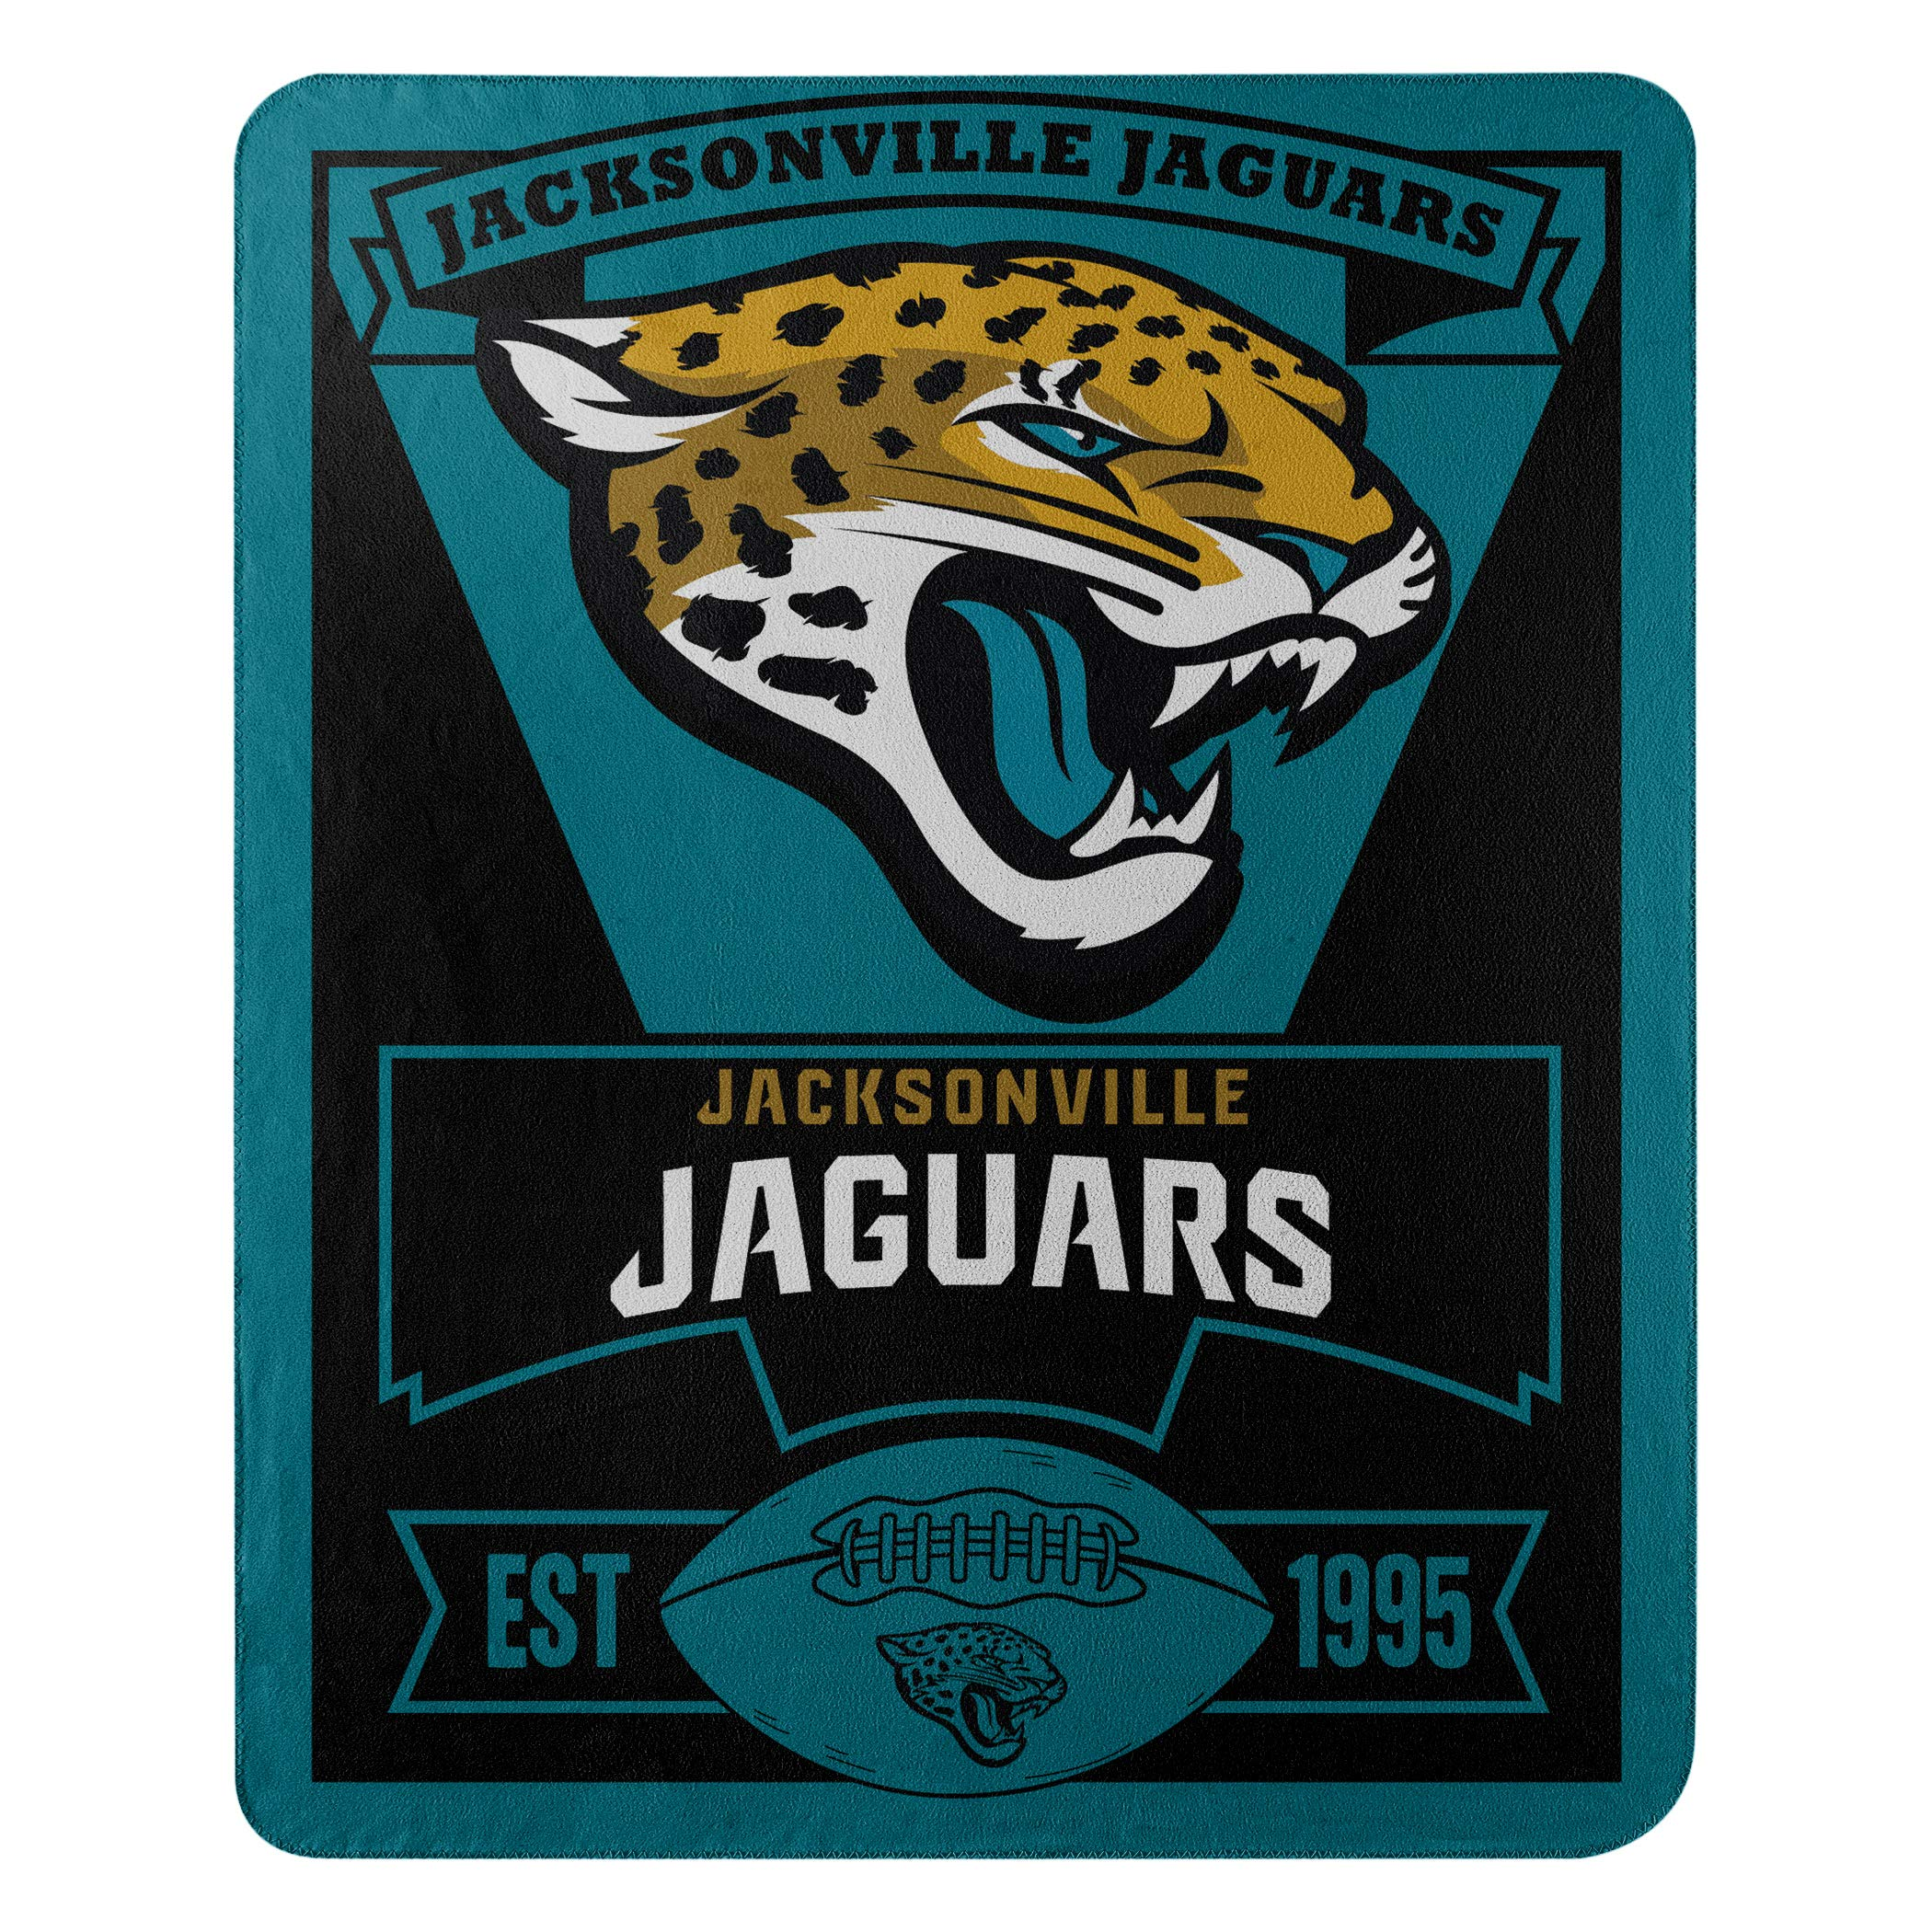 The Northwest Company Officially Licensed NFL Jacksonville Jaguars Marque Printed Fleece Throw Blanket, 50'' x 60'', Multi Color by The Northwest Company